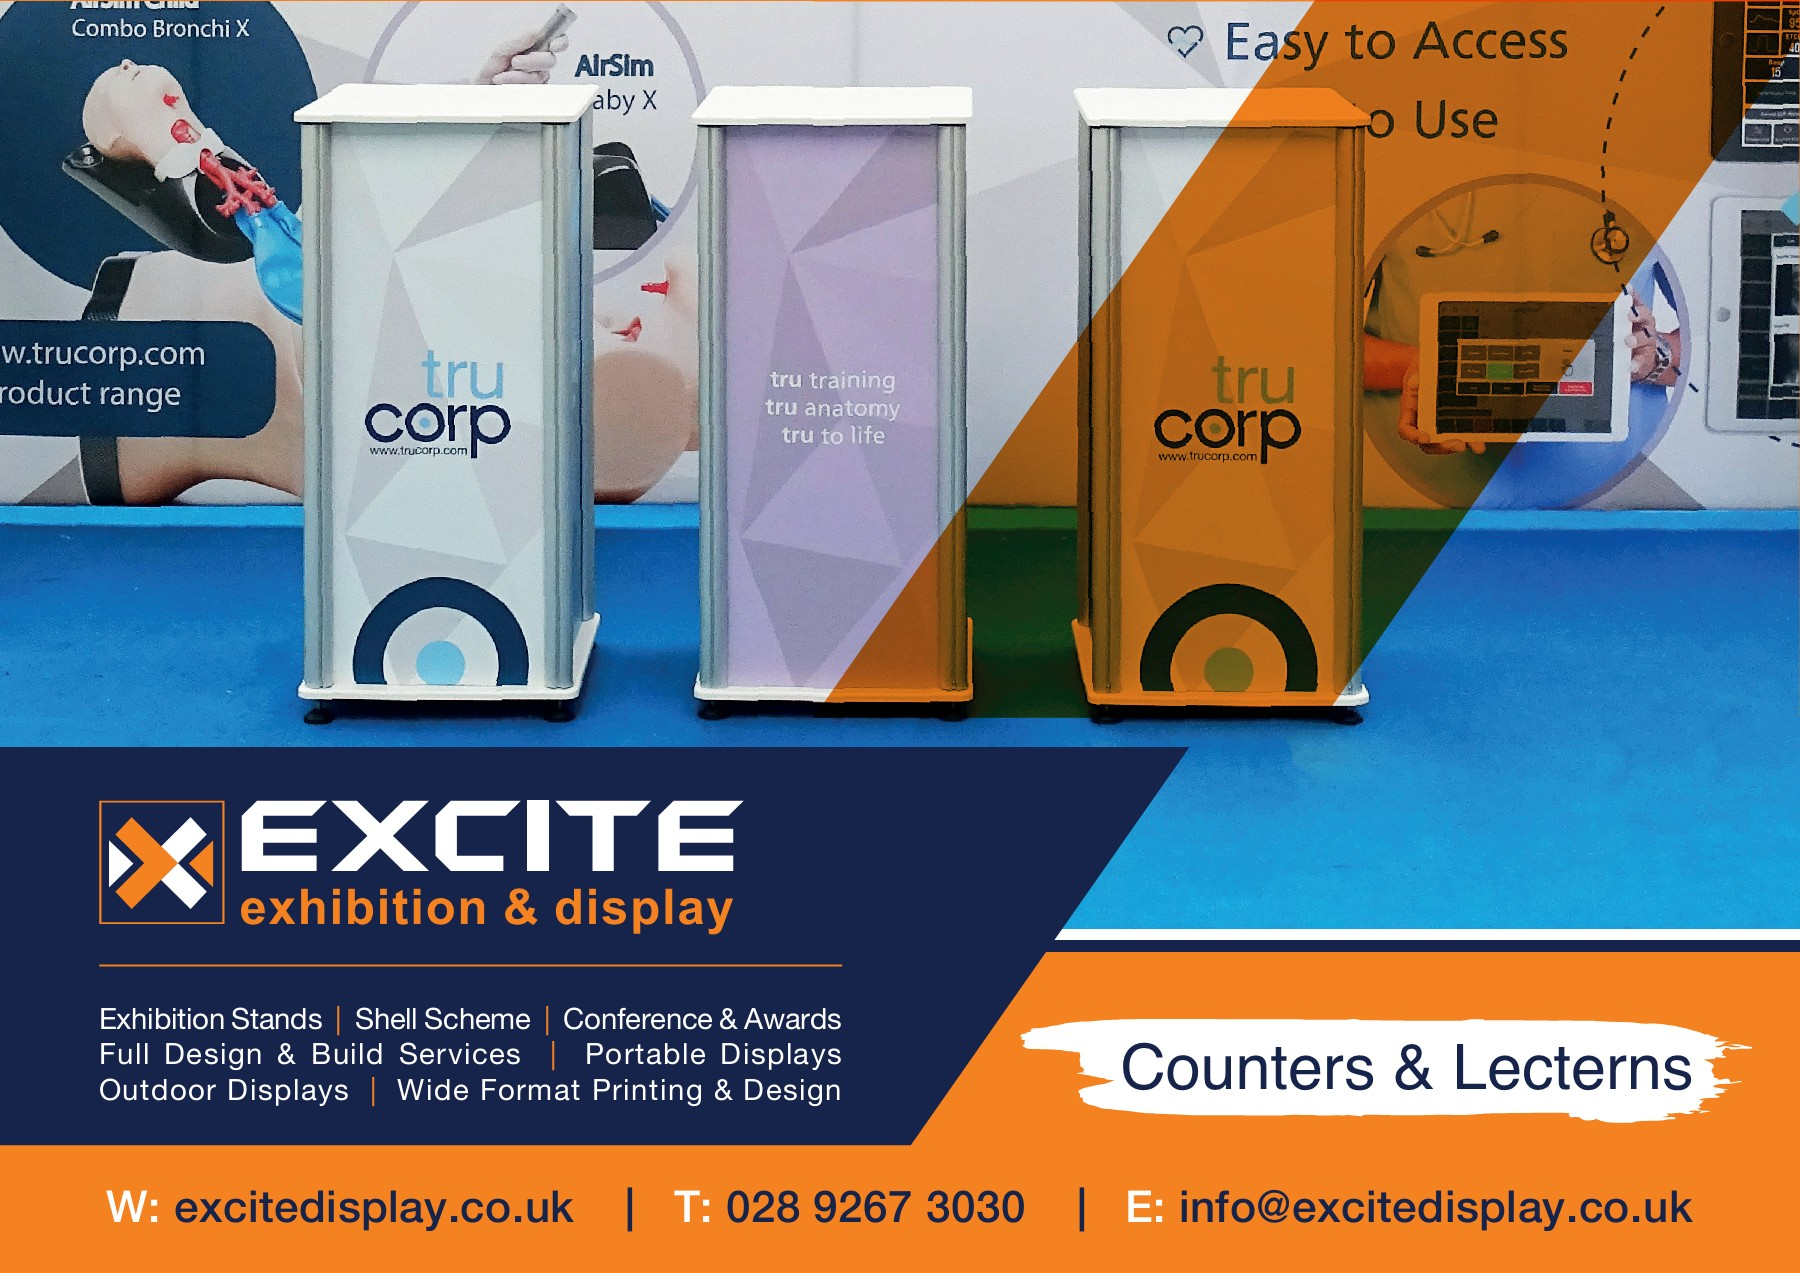 Exhibition Display Stand Full Colour Printed Graphic Pop up counter Plinth